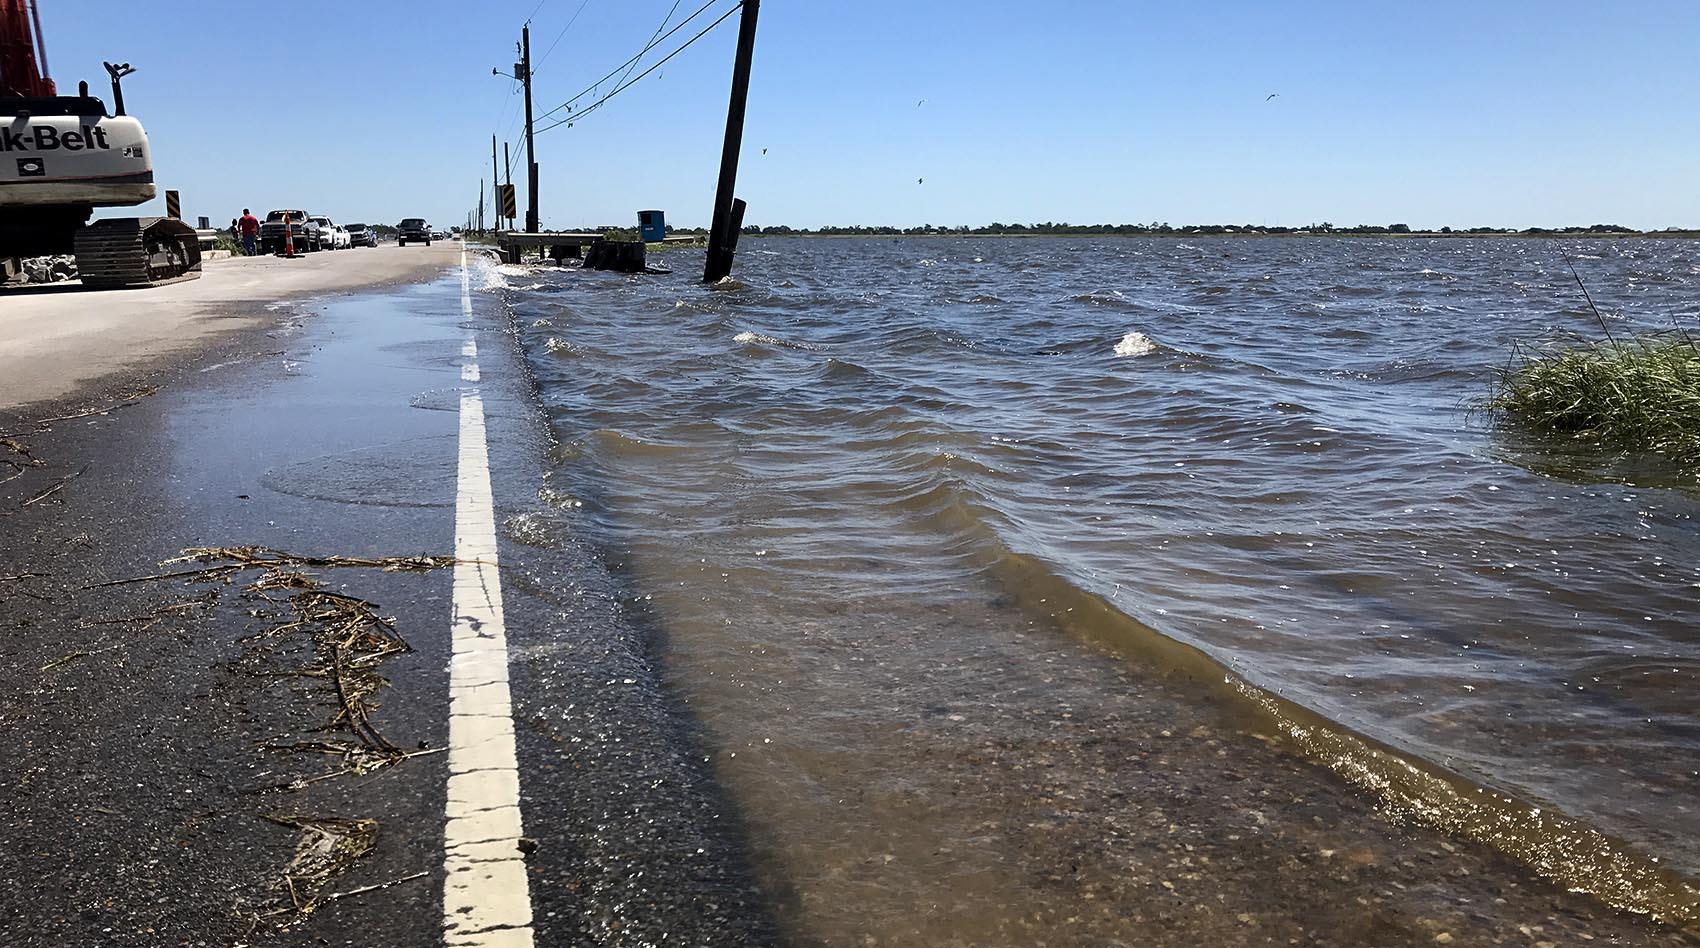 The road leading to Isle de Jean Charles, La., is known to flood in perfect weather. (Peter O'Dowd/Here & Now)